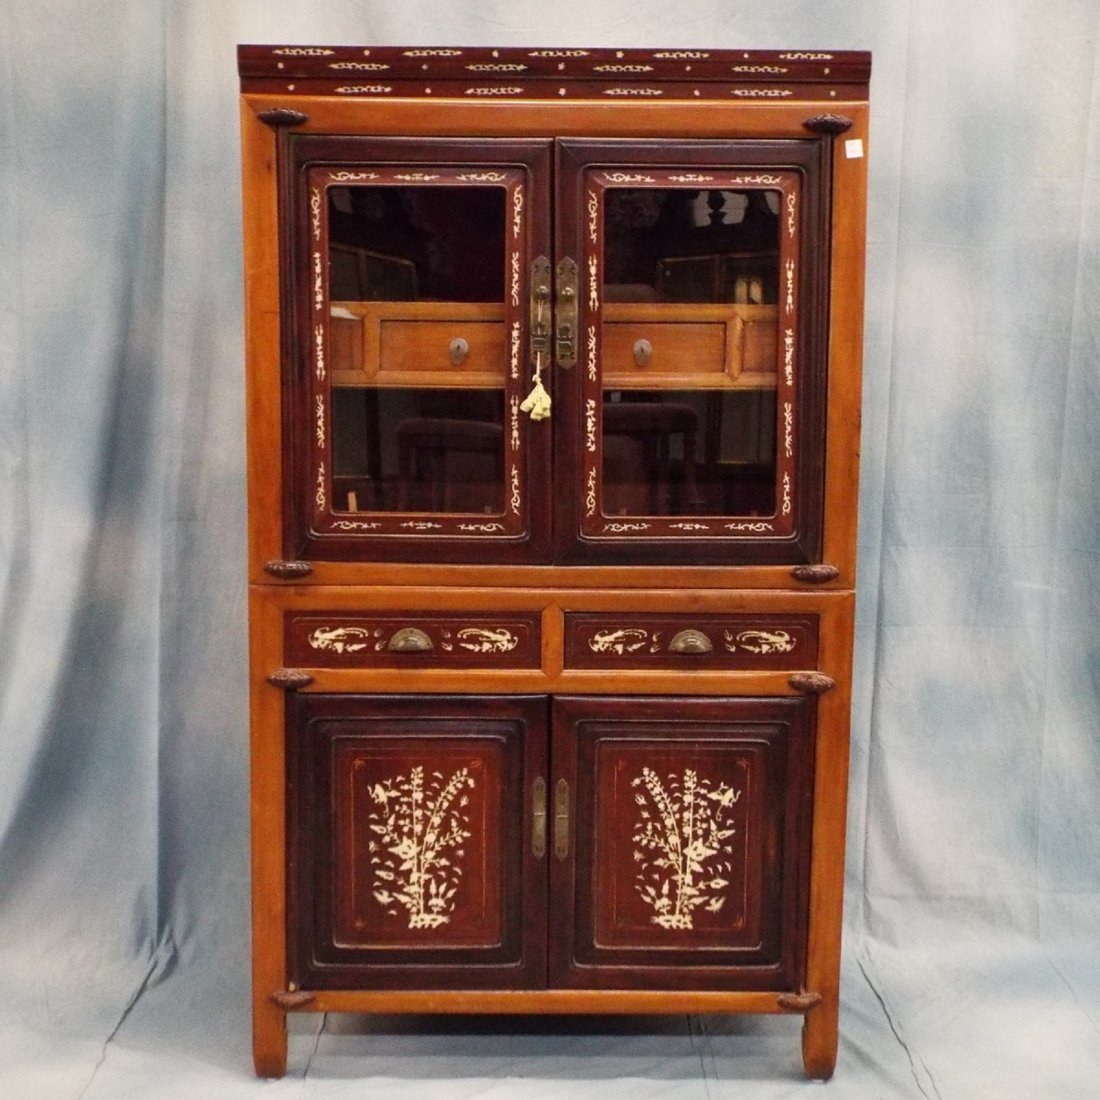 Oriental Cabinet with Carved Bone Inlay